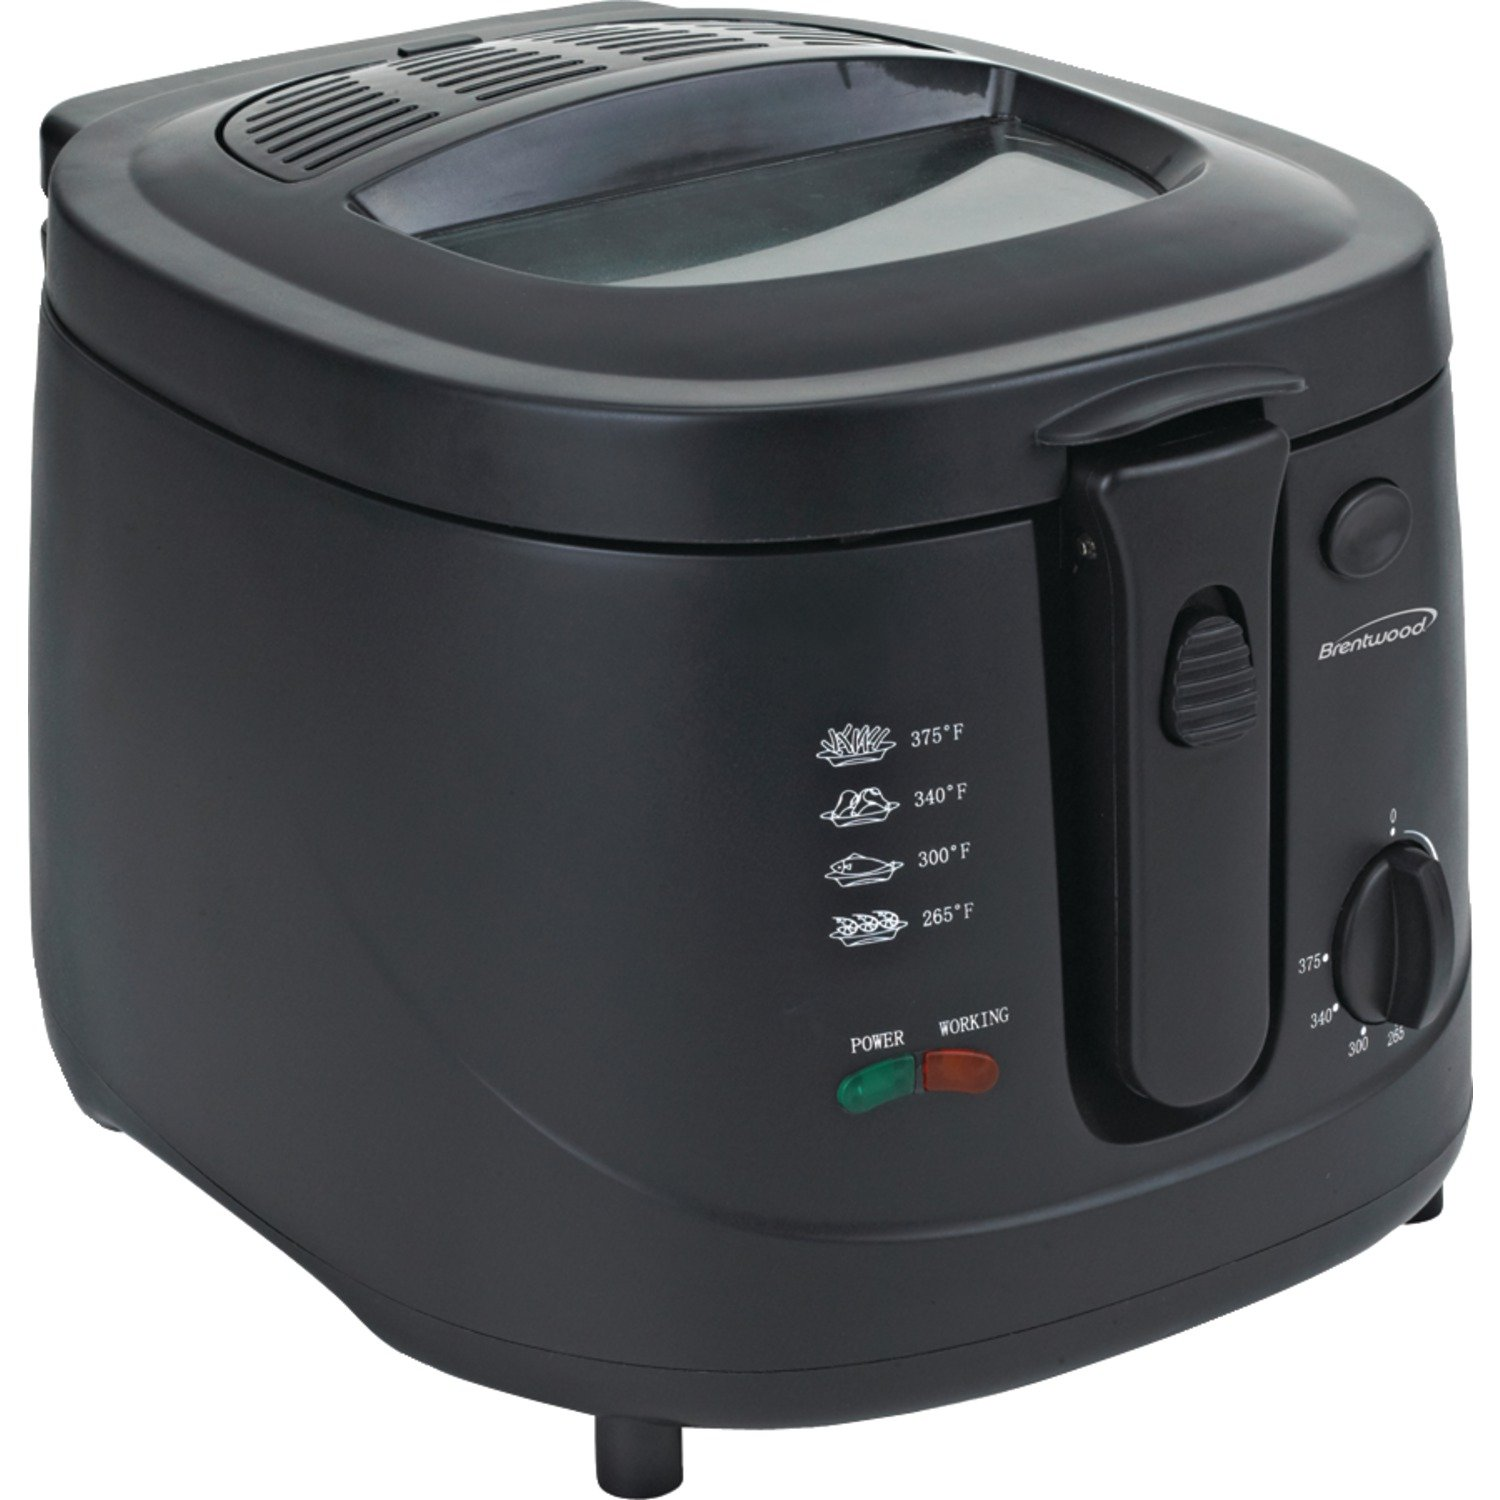 Amazon.com: Brentwood DF-725 1500w 12-Cup Deep Fryer, Black: Kitchen Small Appliances: Kitchen & Dining